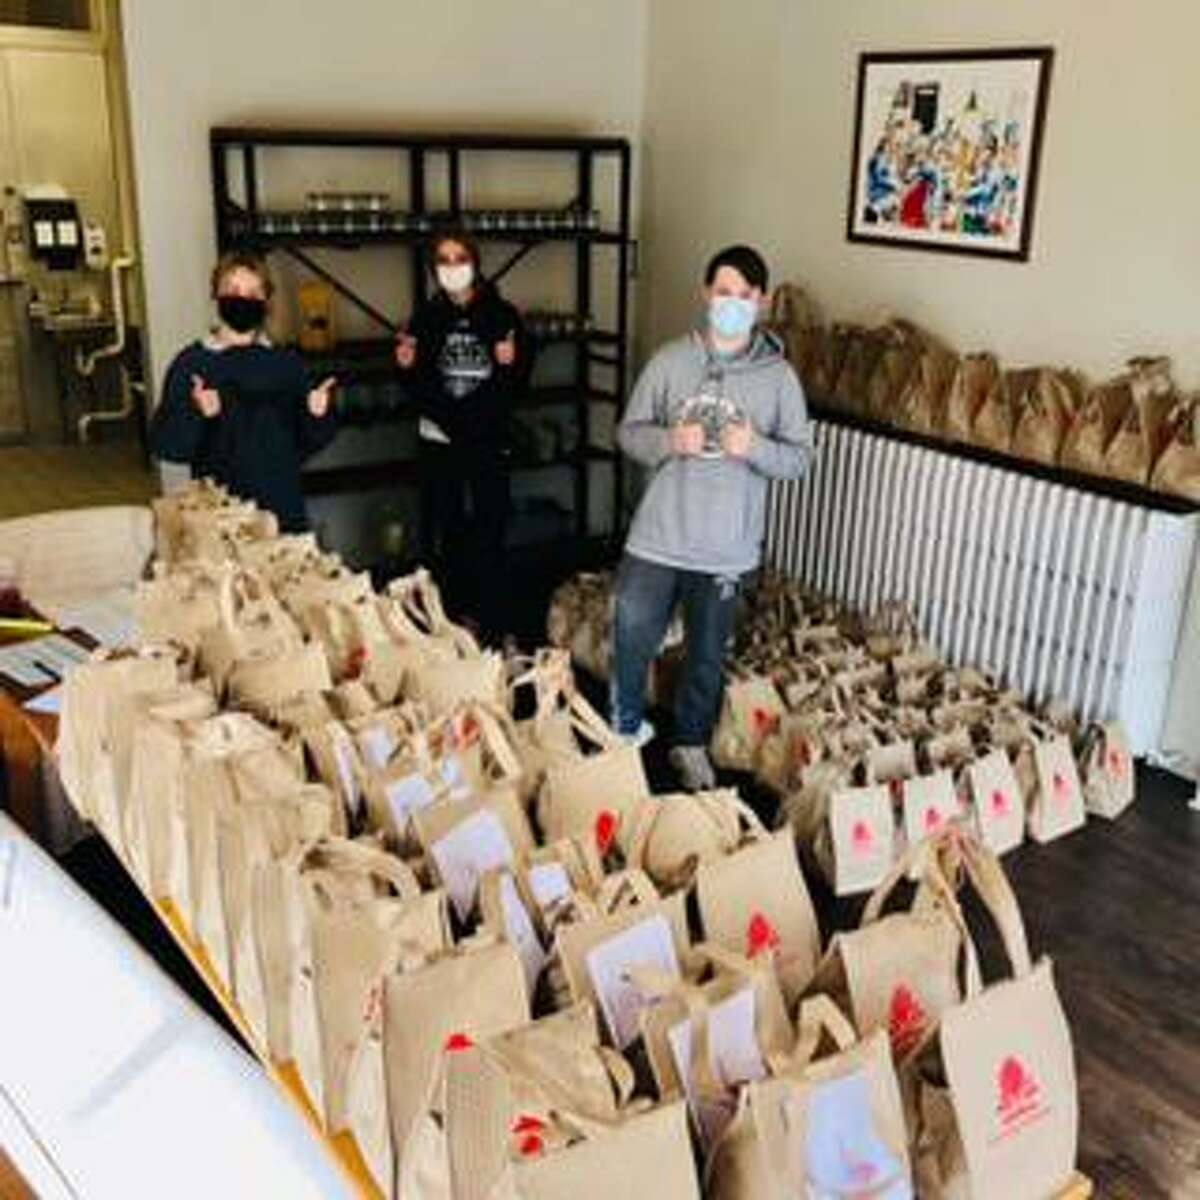 Courtnay Arpano, owner of Courtnay's Kitchen in town, helped make sure local seniors got a Thanksgiving meal courtesy of her restaurant by working with the Greenwich Commission on Aging and Greenwich Senior Center. Volunteers, like the ones pictured above, headed out all over town to safely deliver the meals.